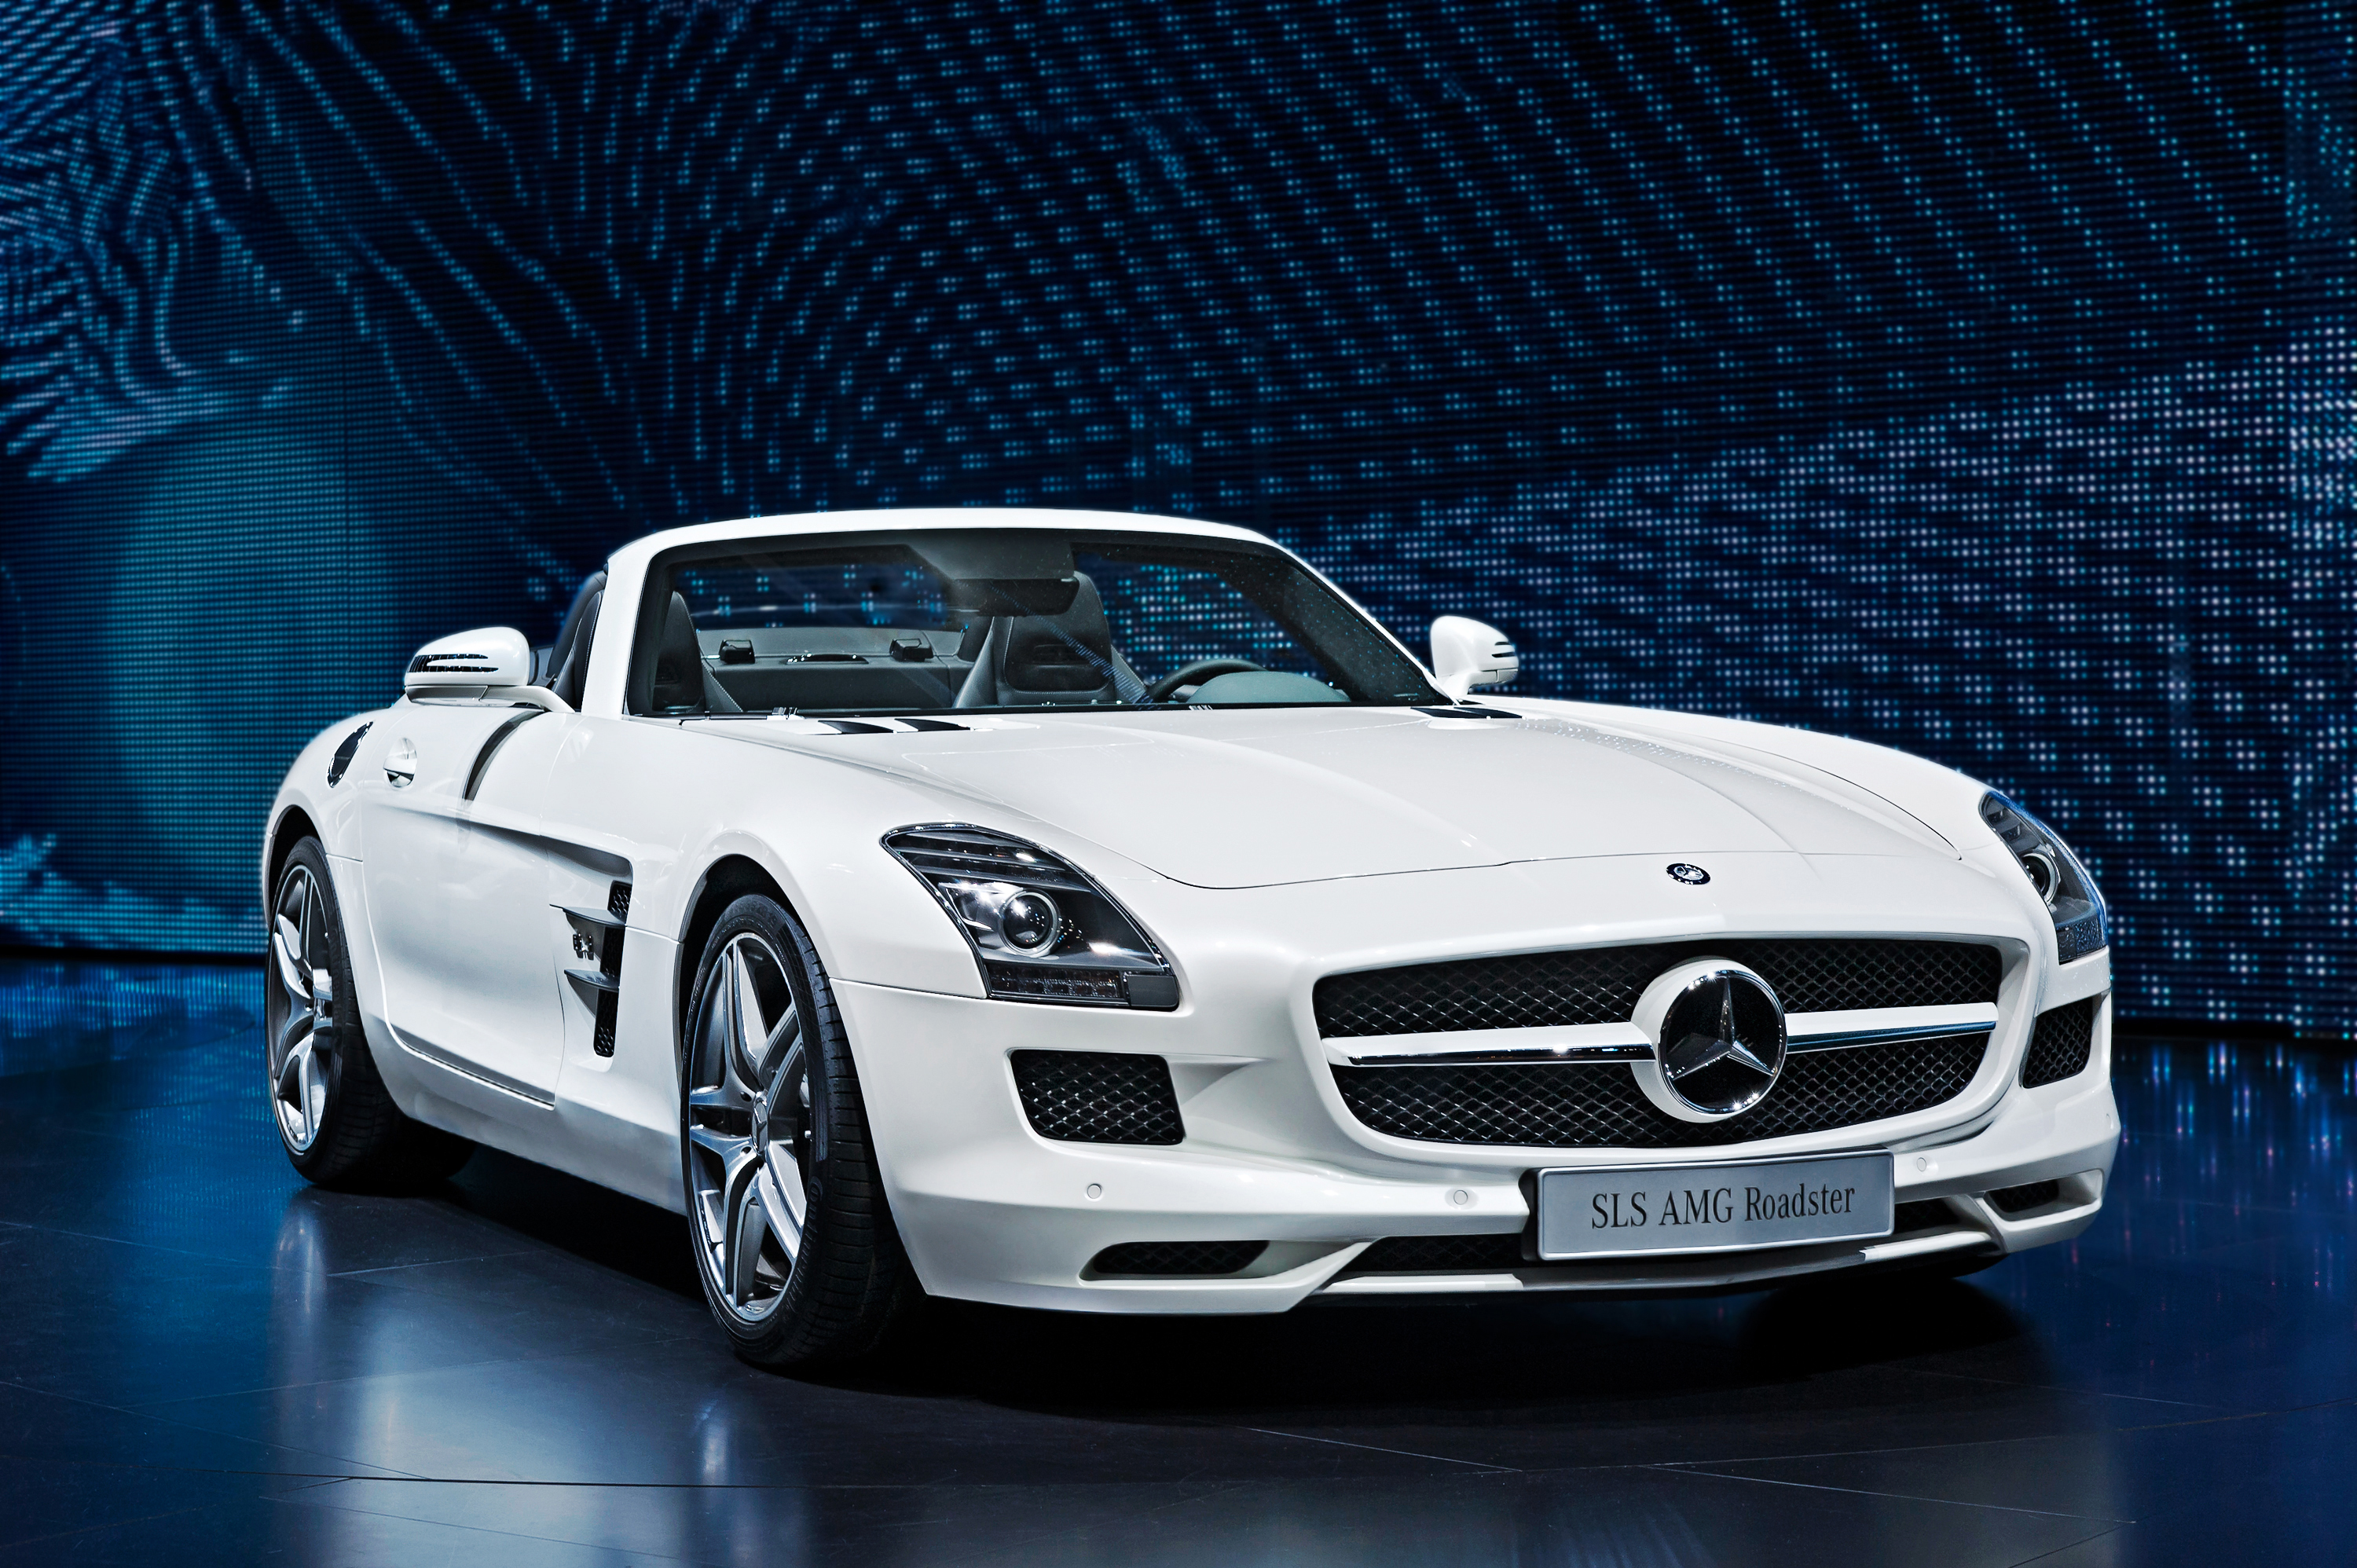 Filesls amg roadsterg wikipedia filesls amg roadsterg publicscrutiny Choice Image